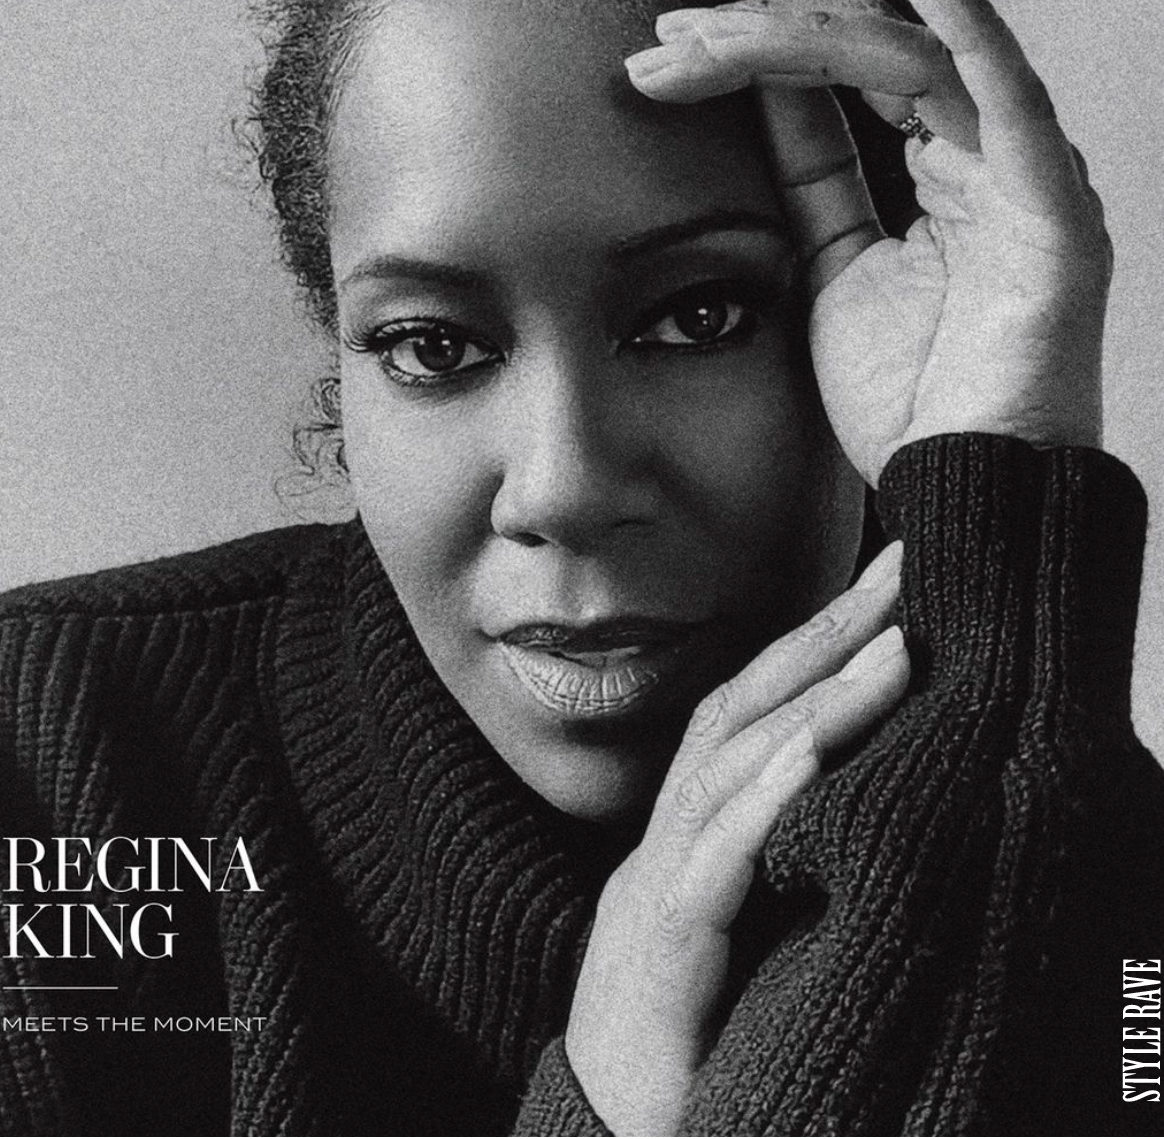 regina-king-wsj-magazine-cover-december-january-2020-style-rave